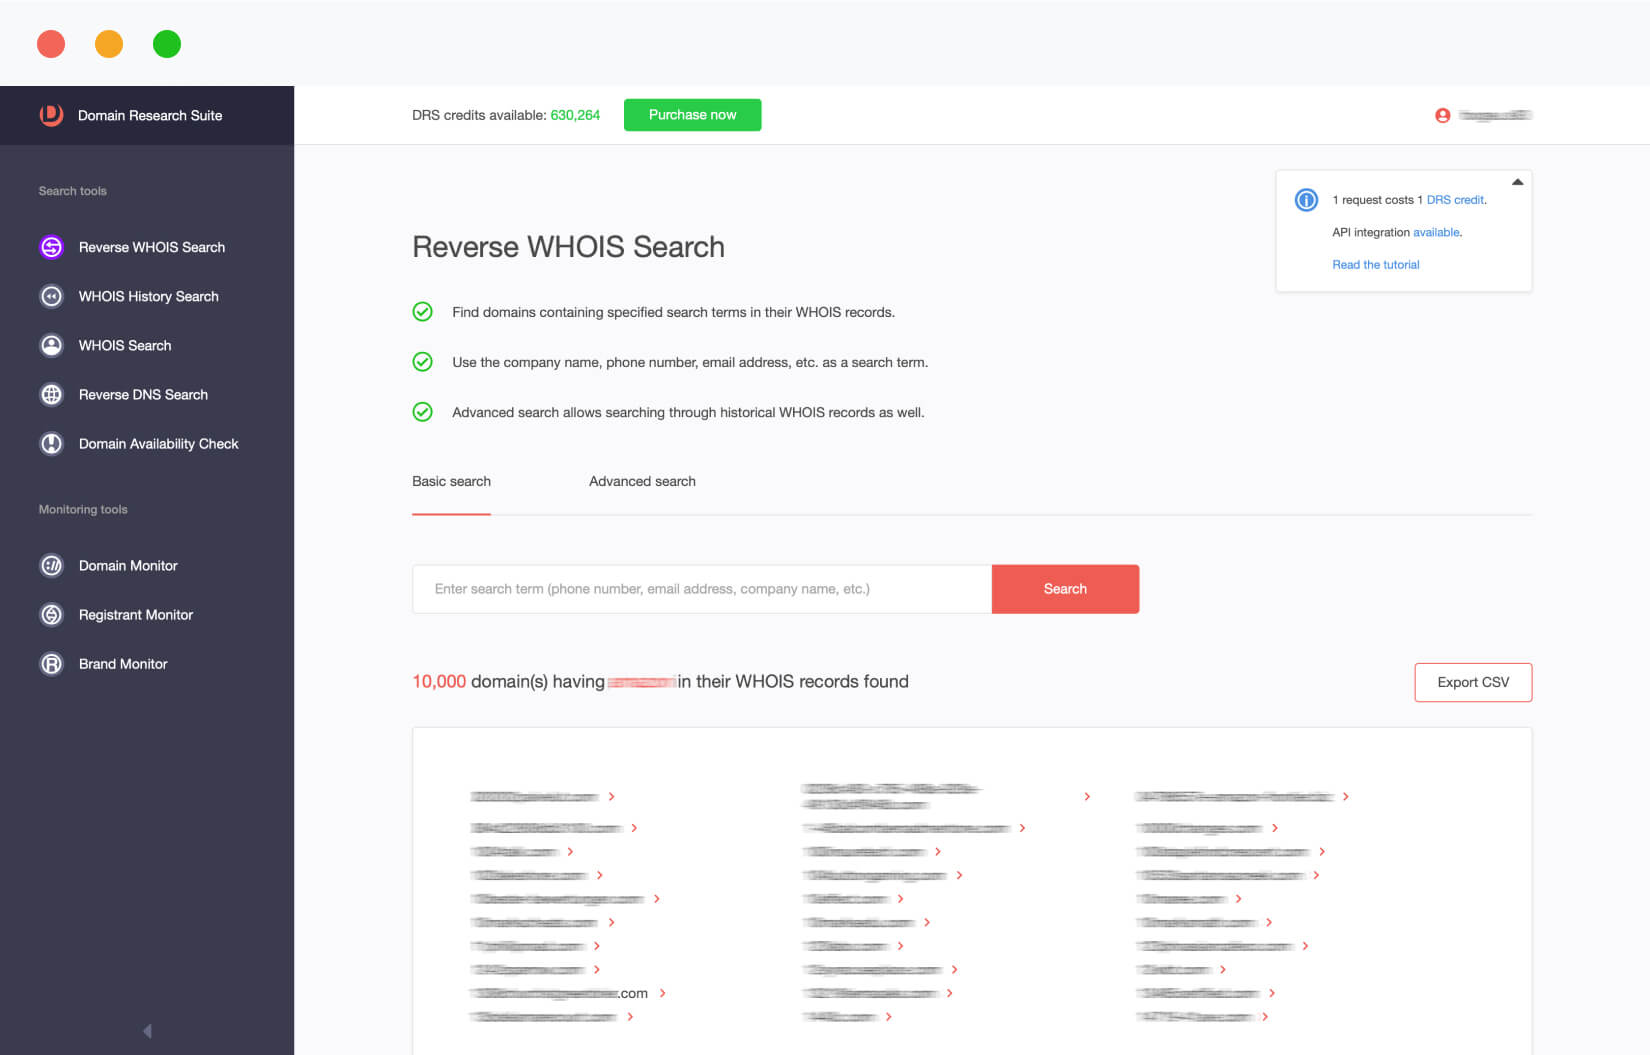 Reverse WHOIS Search